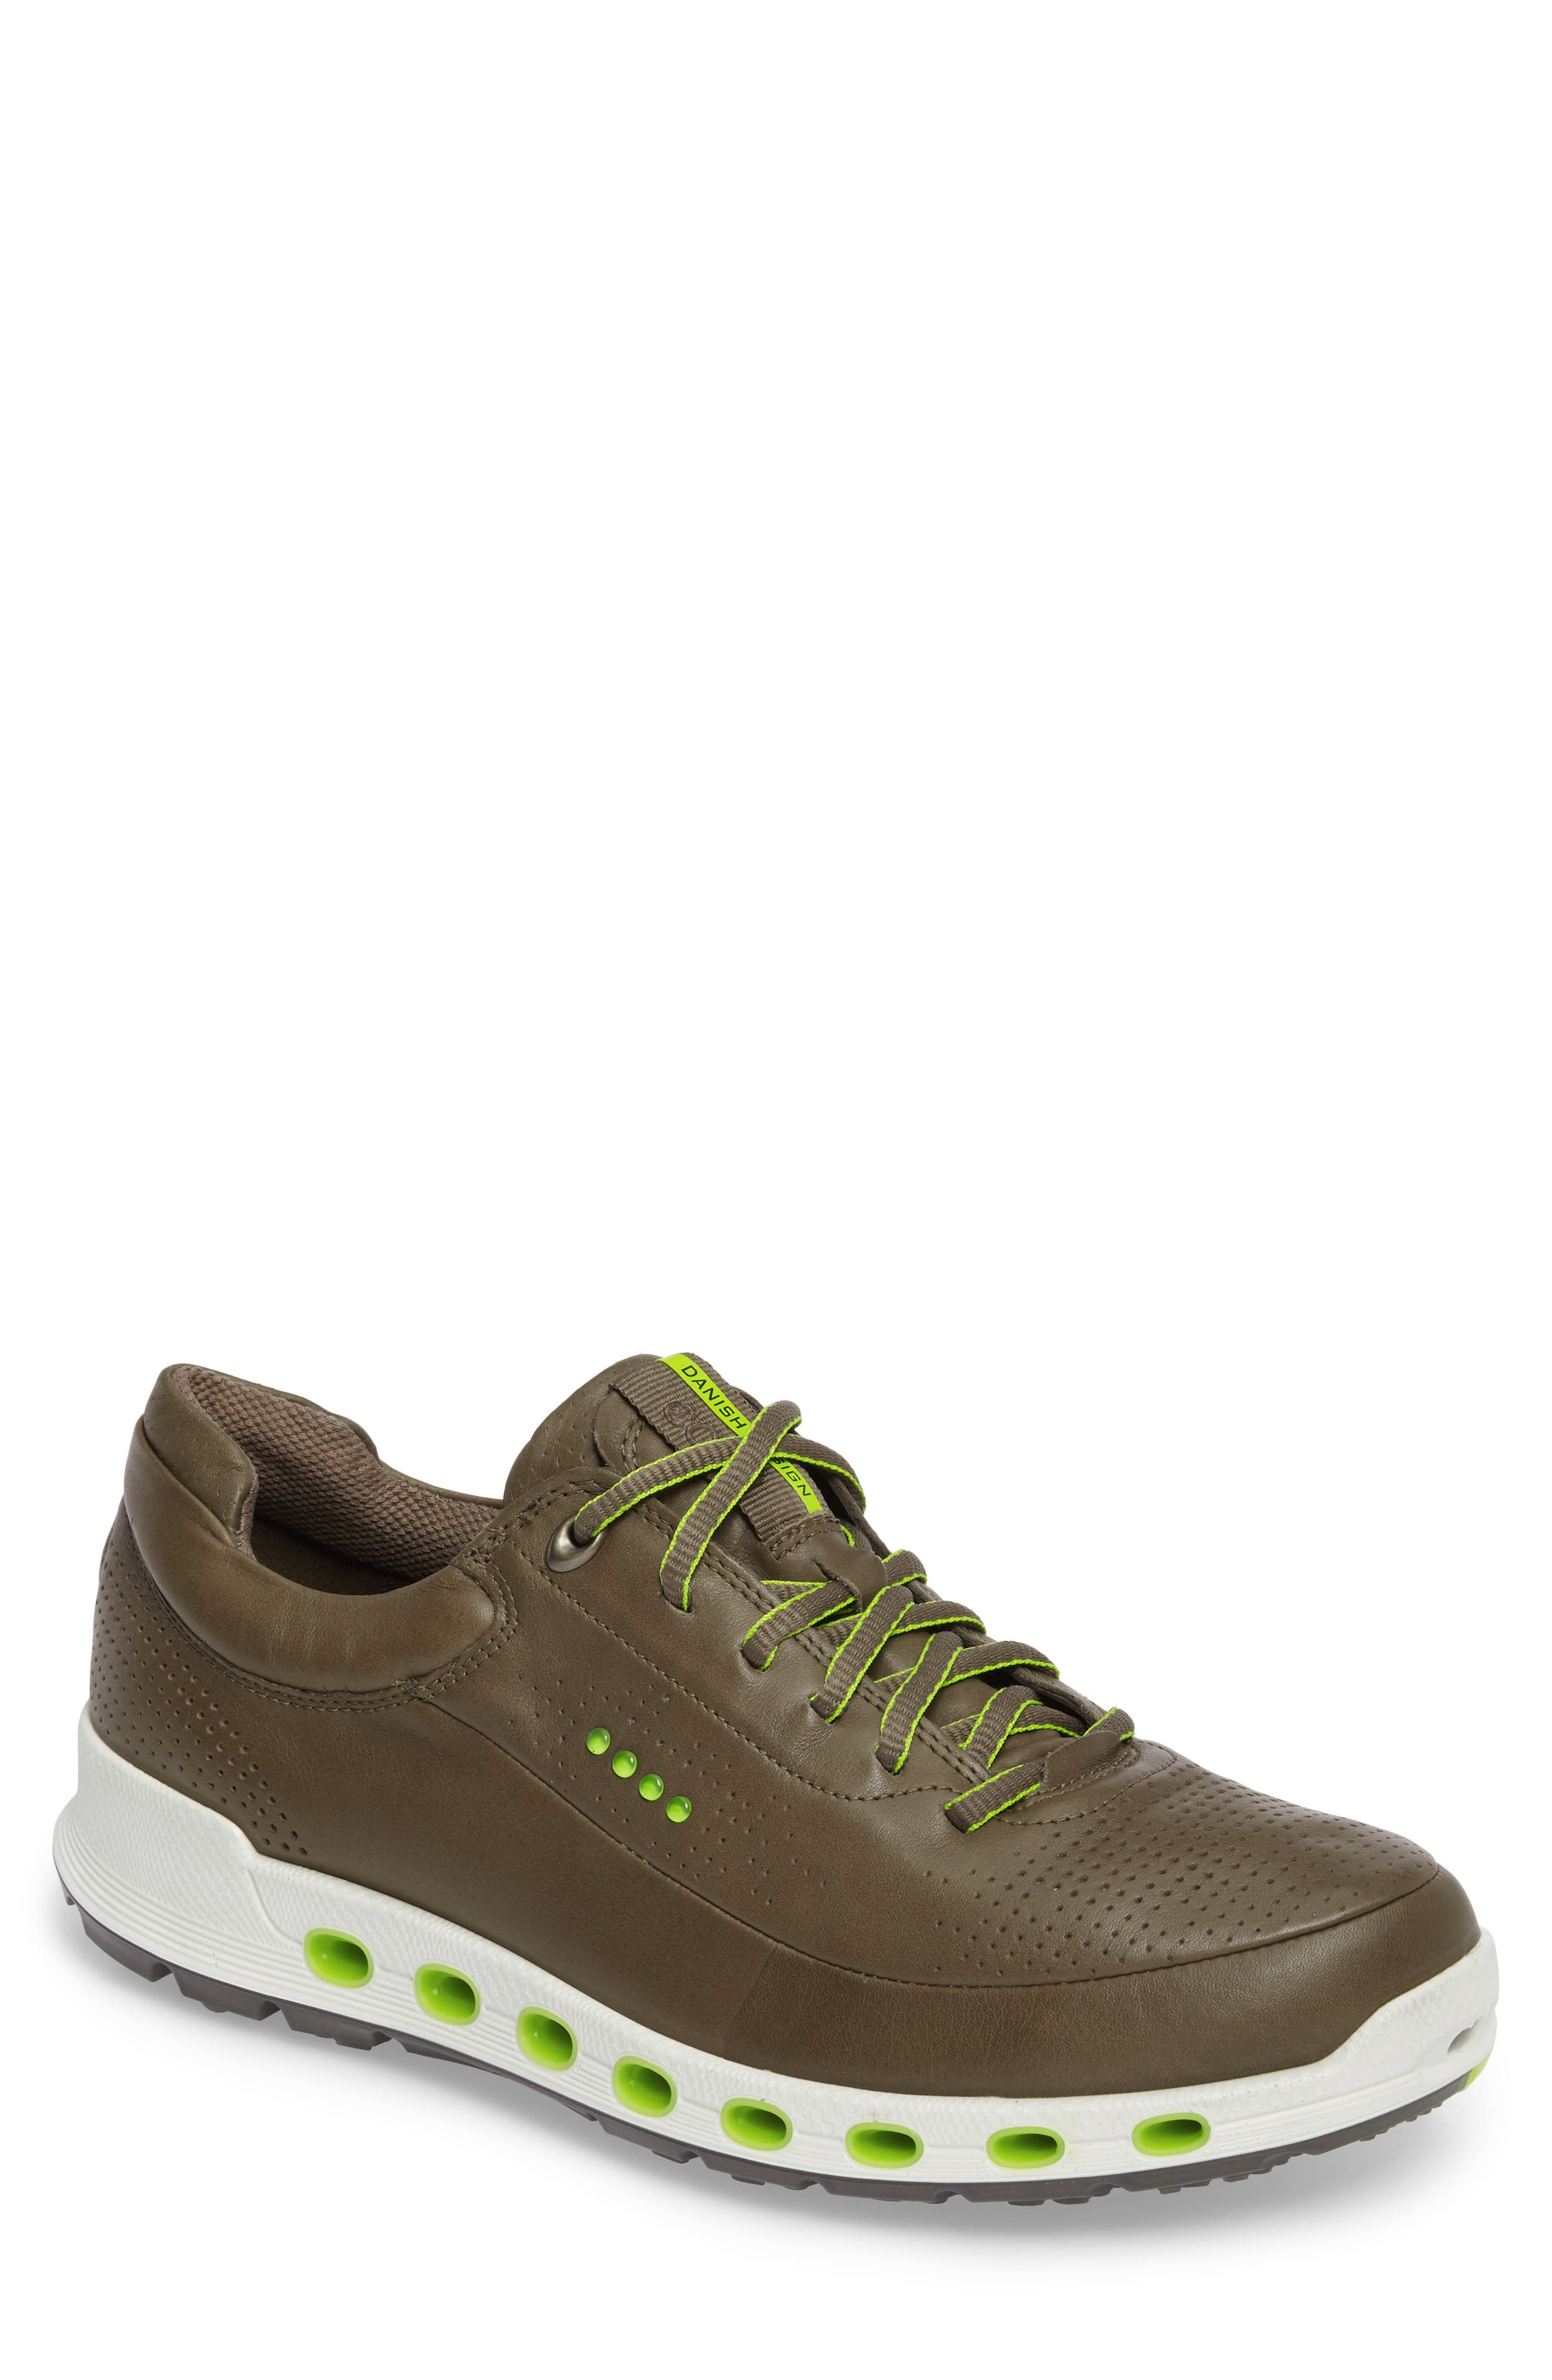 Cool 2.0 Leather GTX Sneaker,                             Main thumbnail 1, color,                             Tarmac Leather